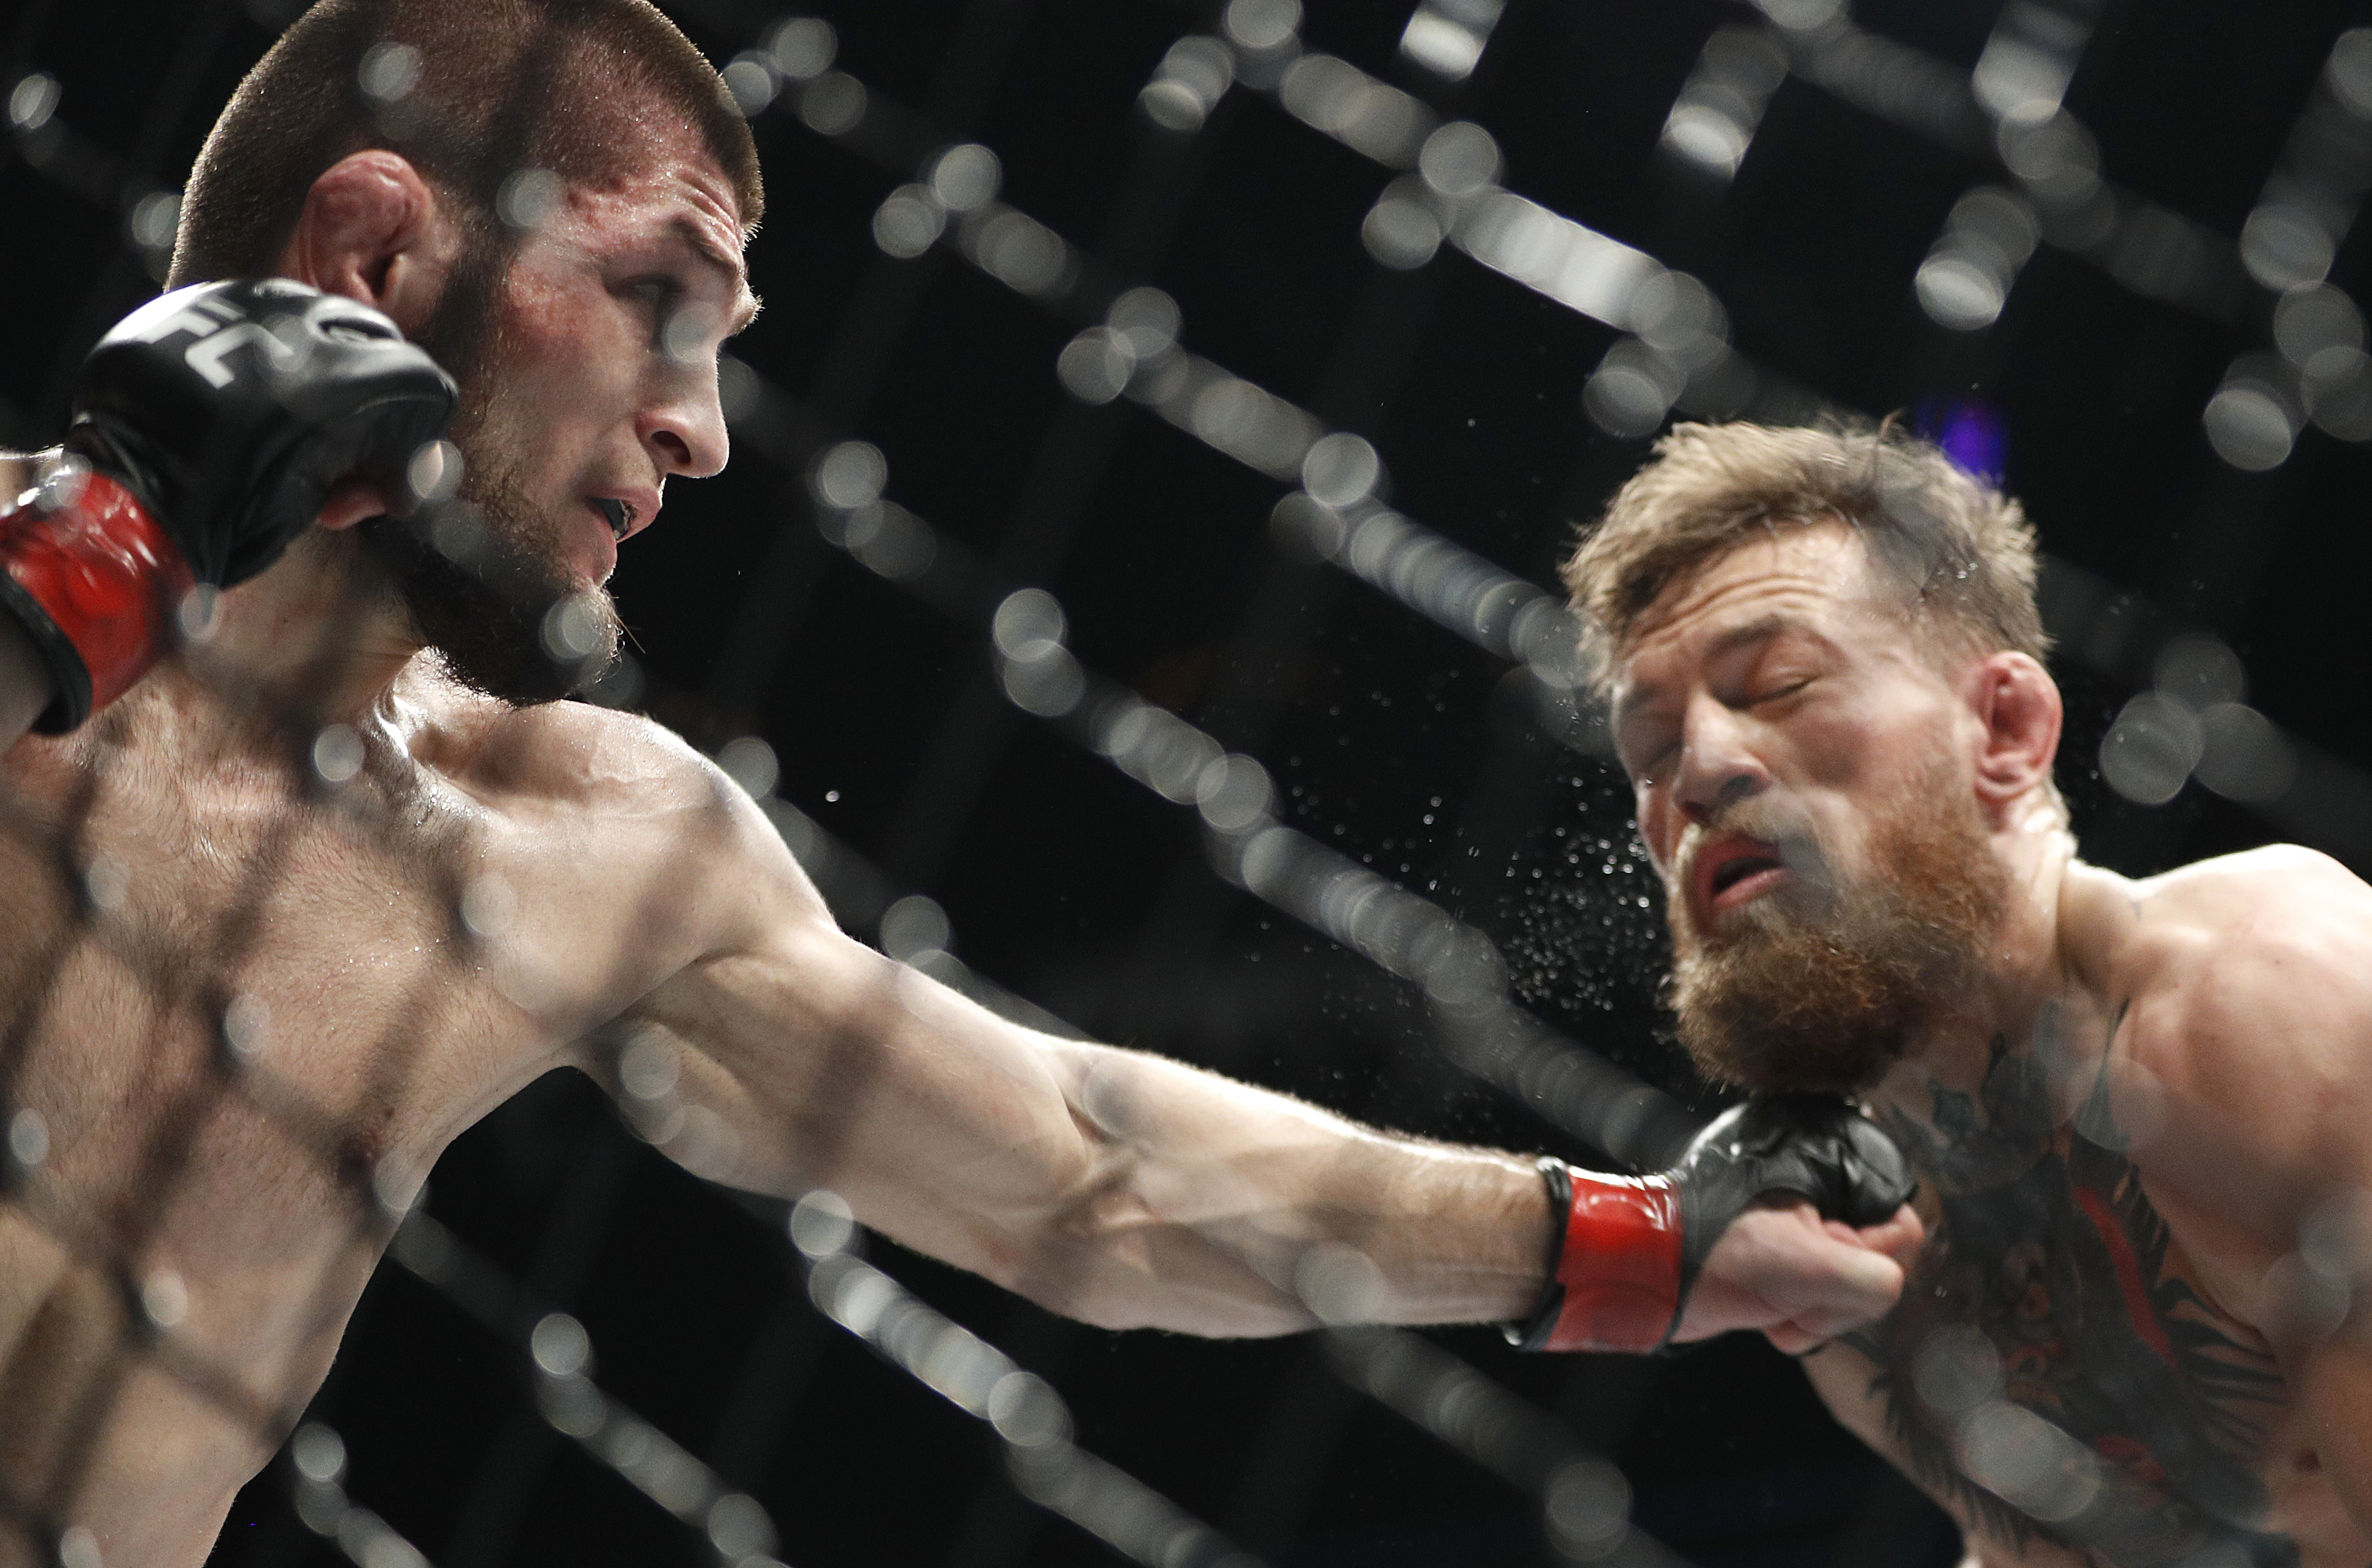 MacGregor suspended for a month from fights for medical reasons